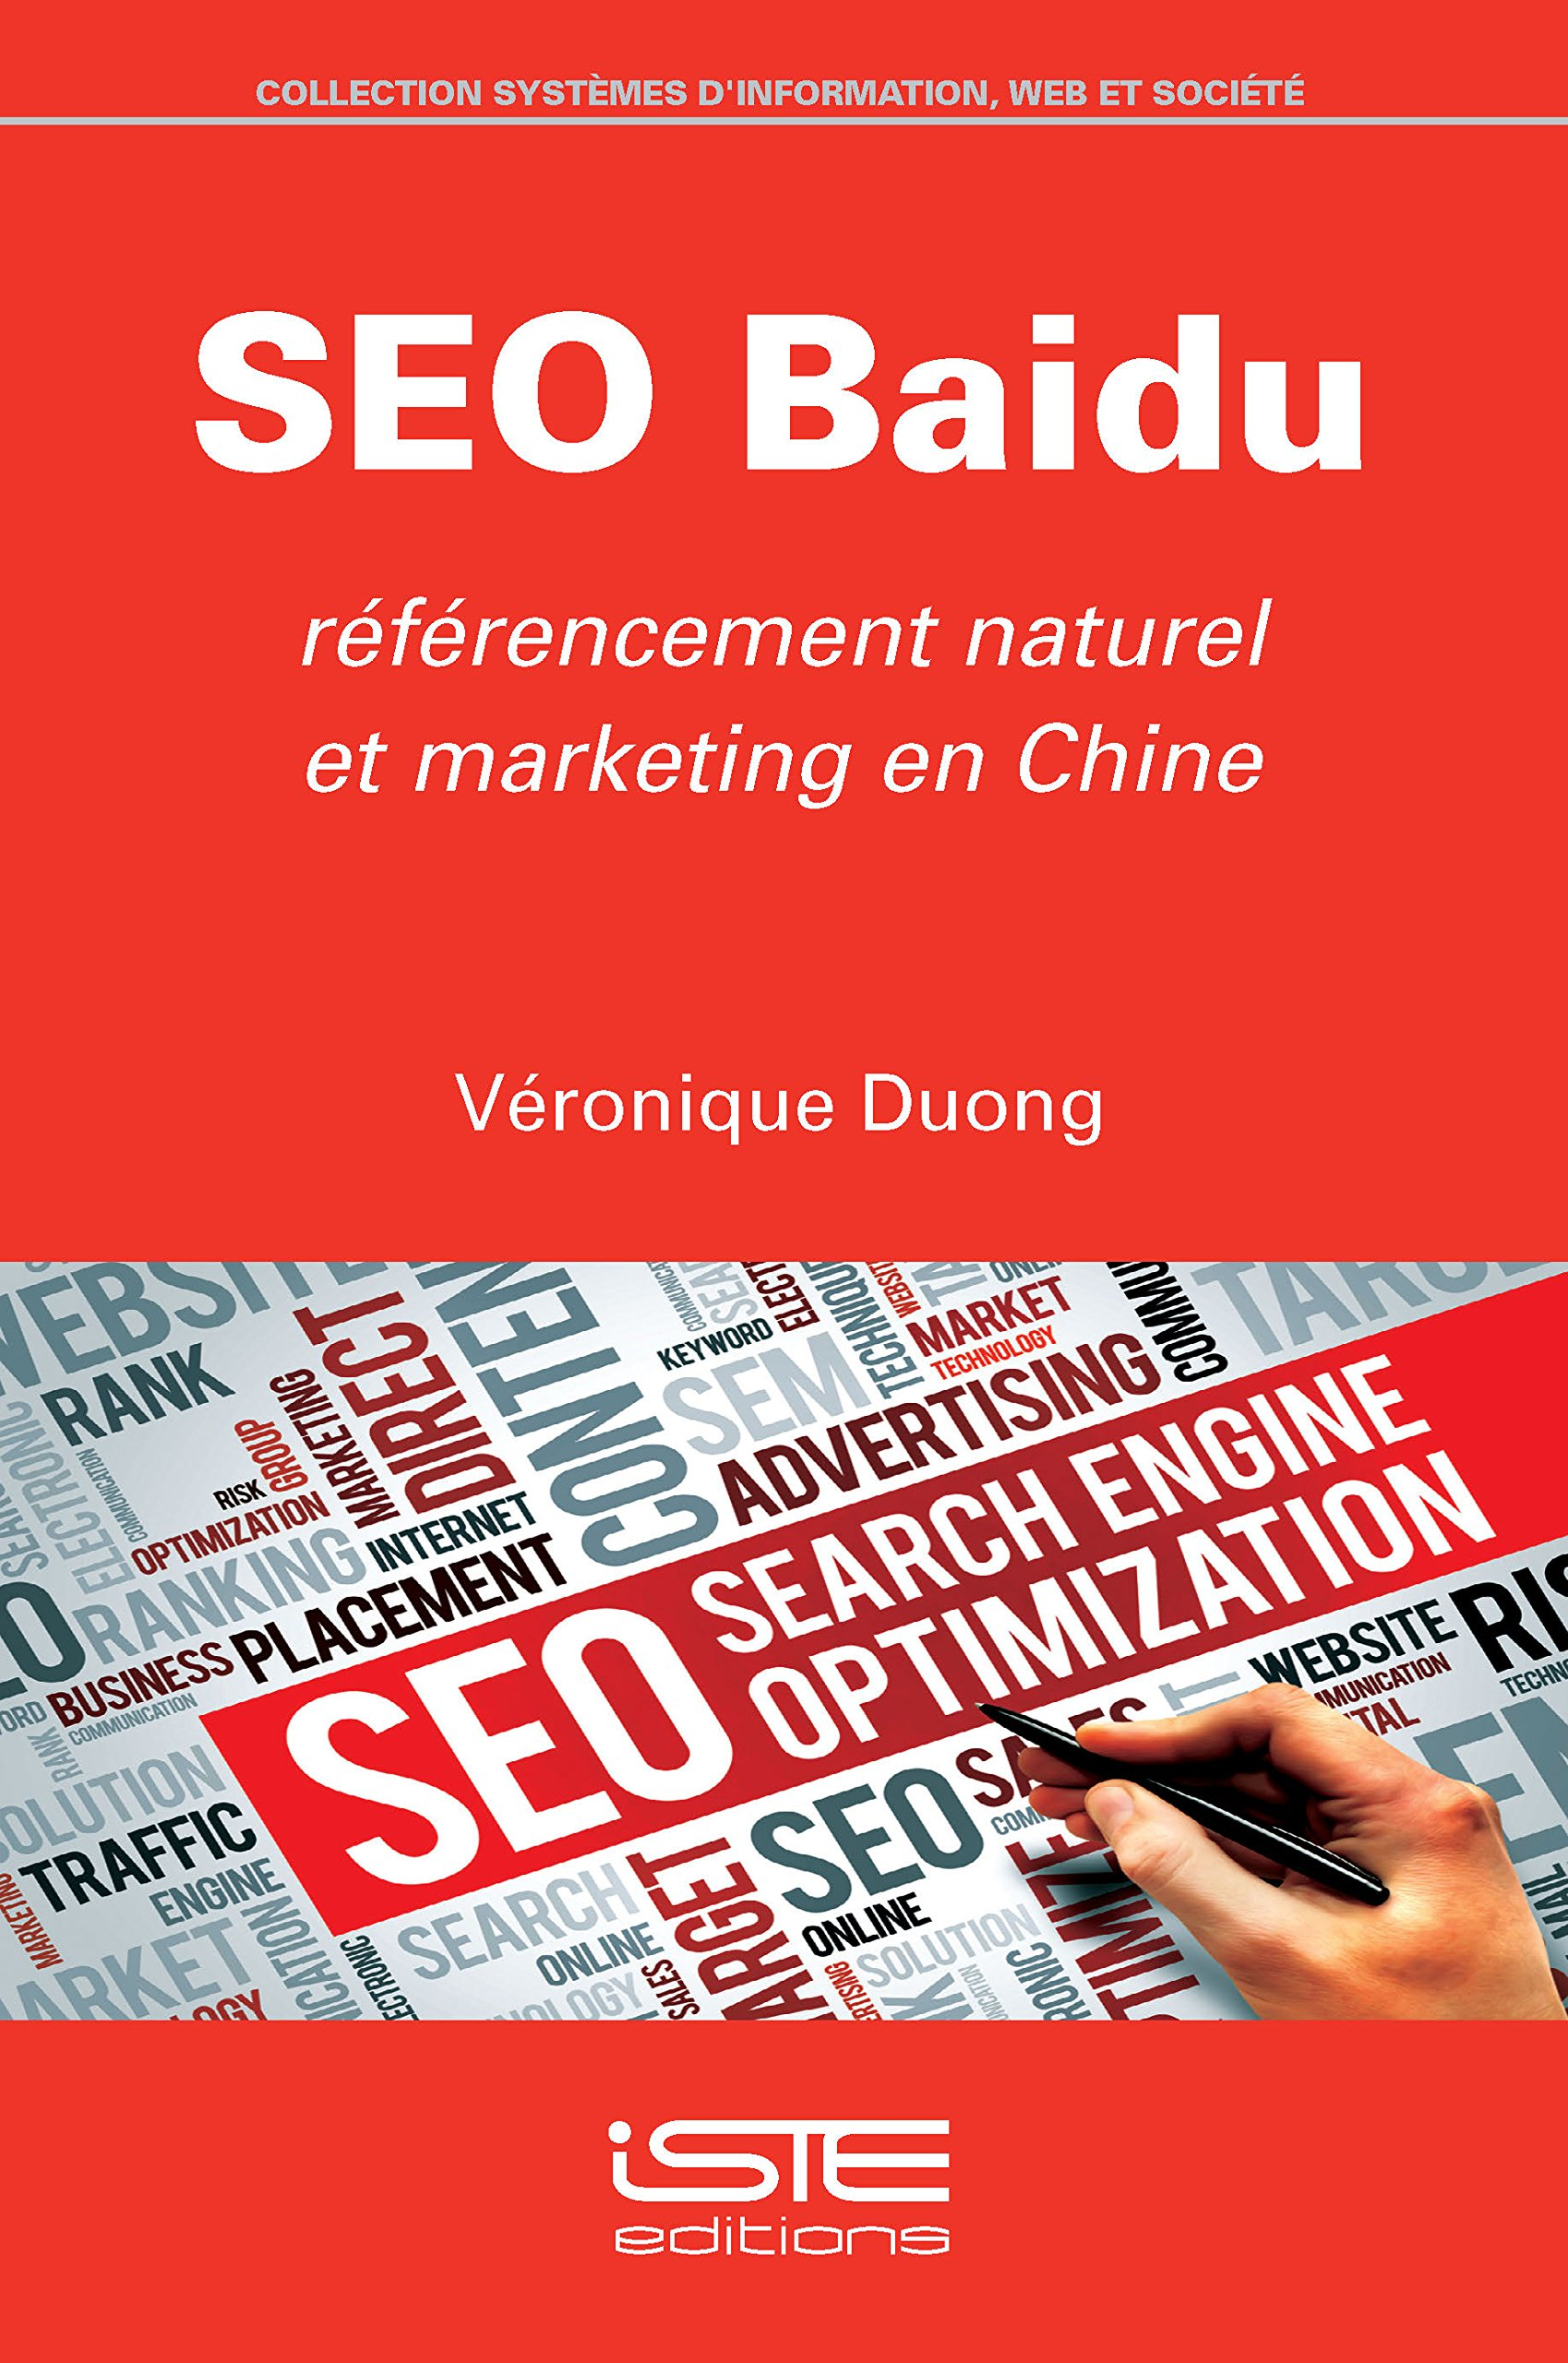 SEO Baidu : référencement naturel et marketing en Chine, Véronique DUONG, experte SEO chine